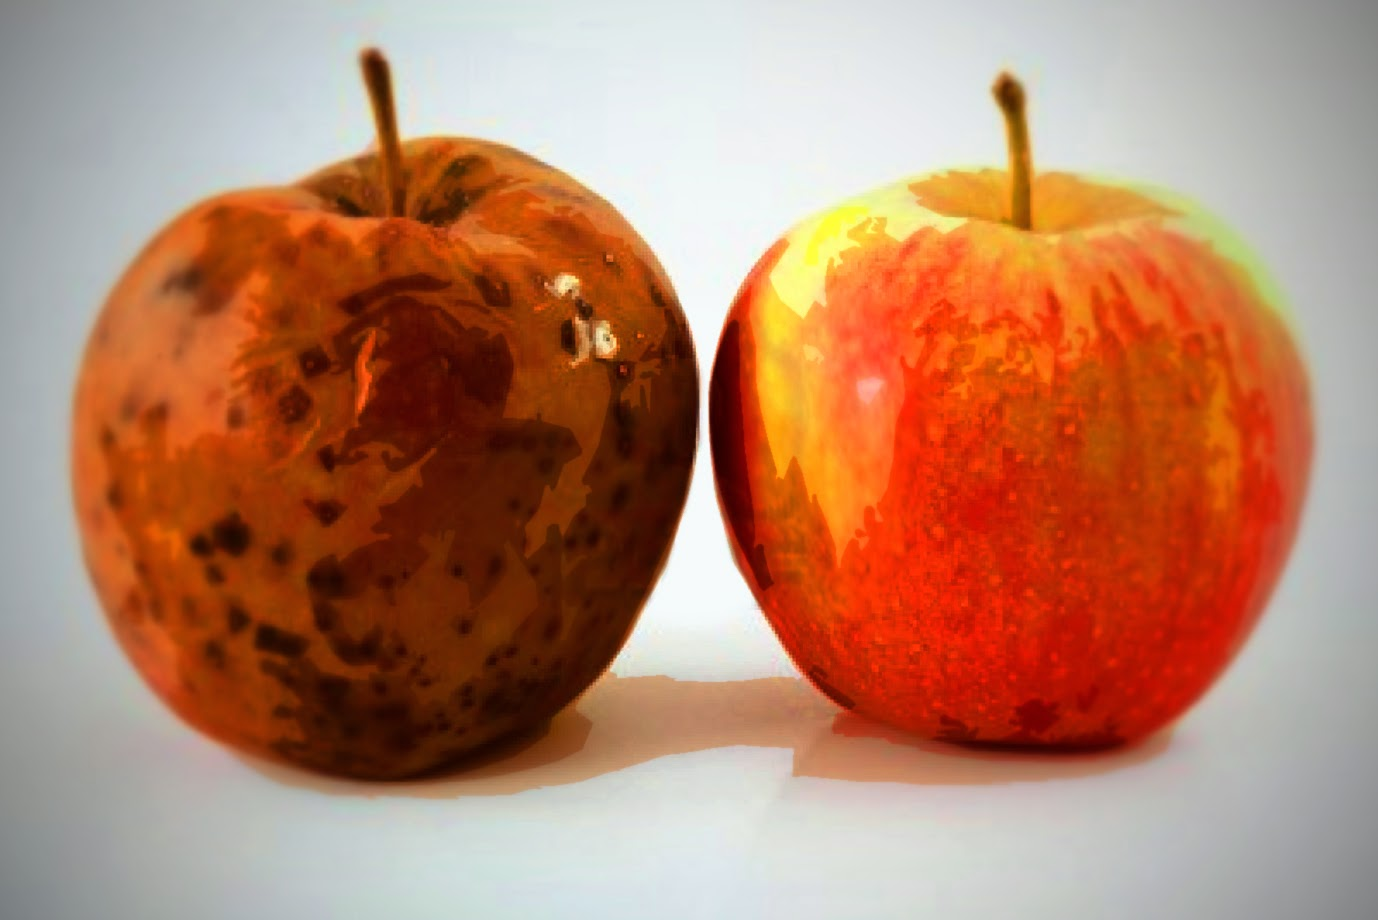 the rotten apple injures its neighbours The rotten apple injures its neighbour awarning that people of bad character corrupt all those with whom they come into contact the proverb is found in a number of variant forms, some of which are illustrated below.